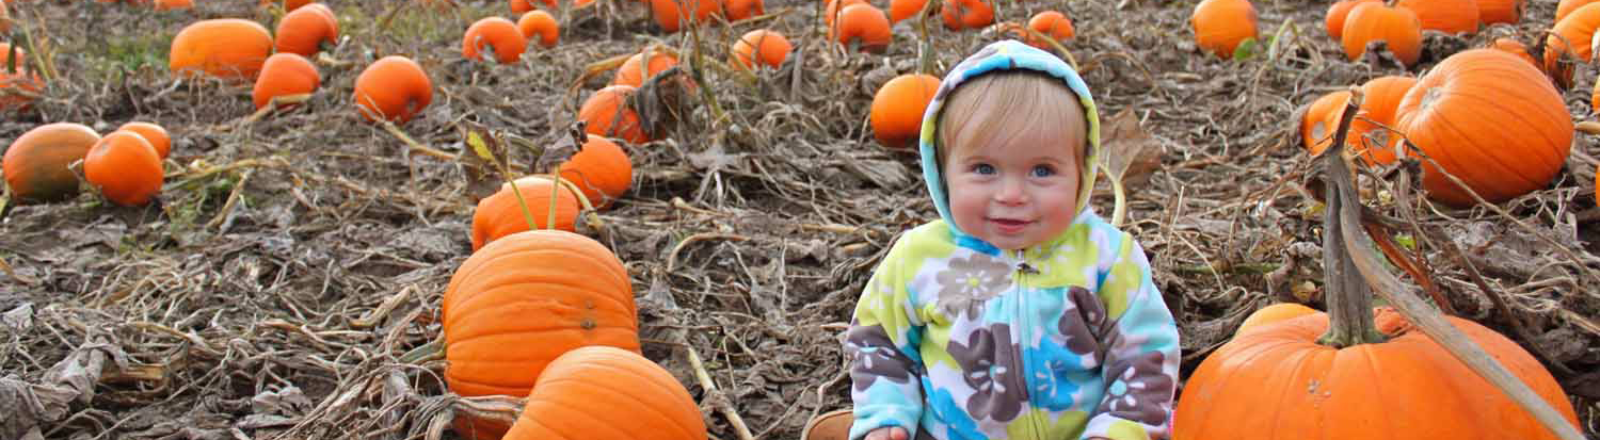 Toddler hanging out with pumpkins